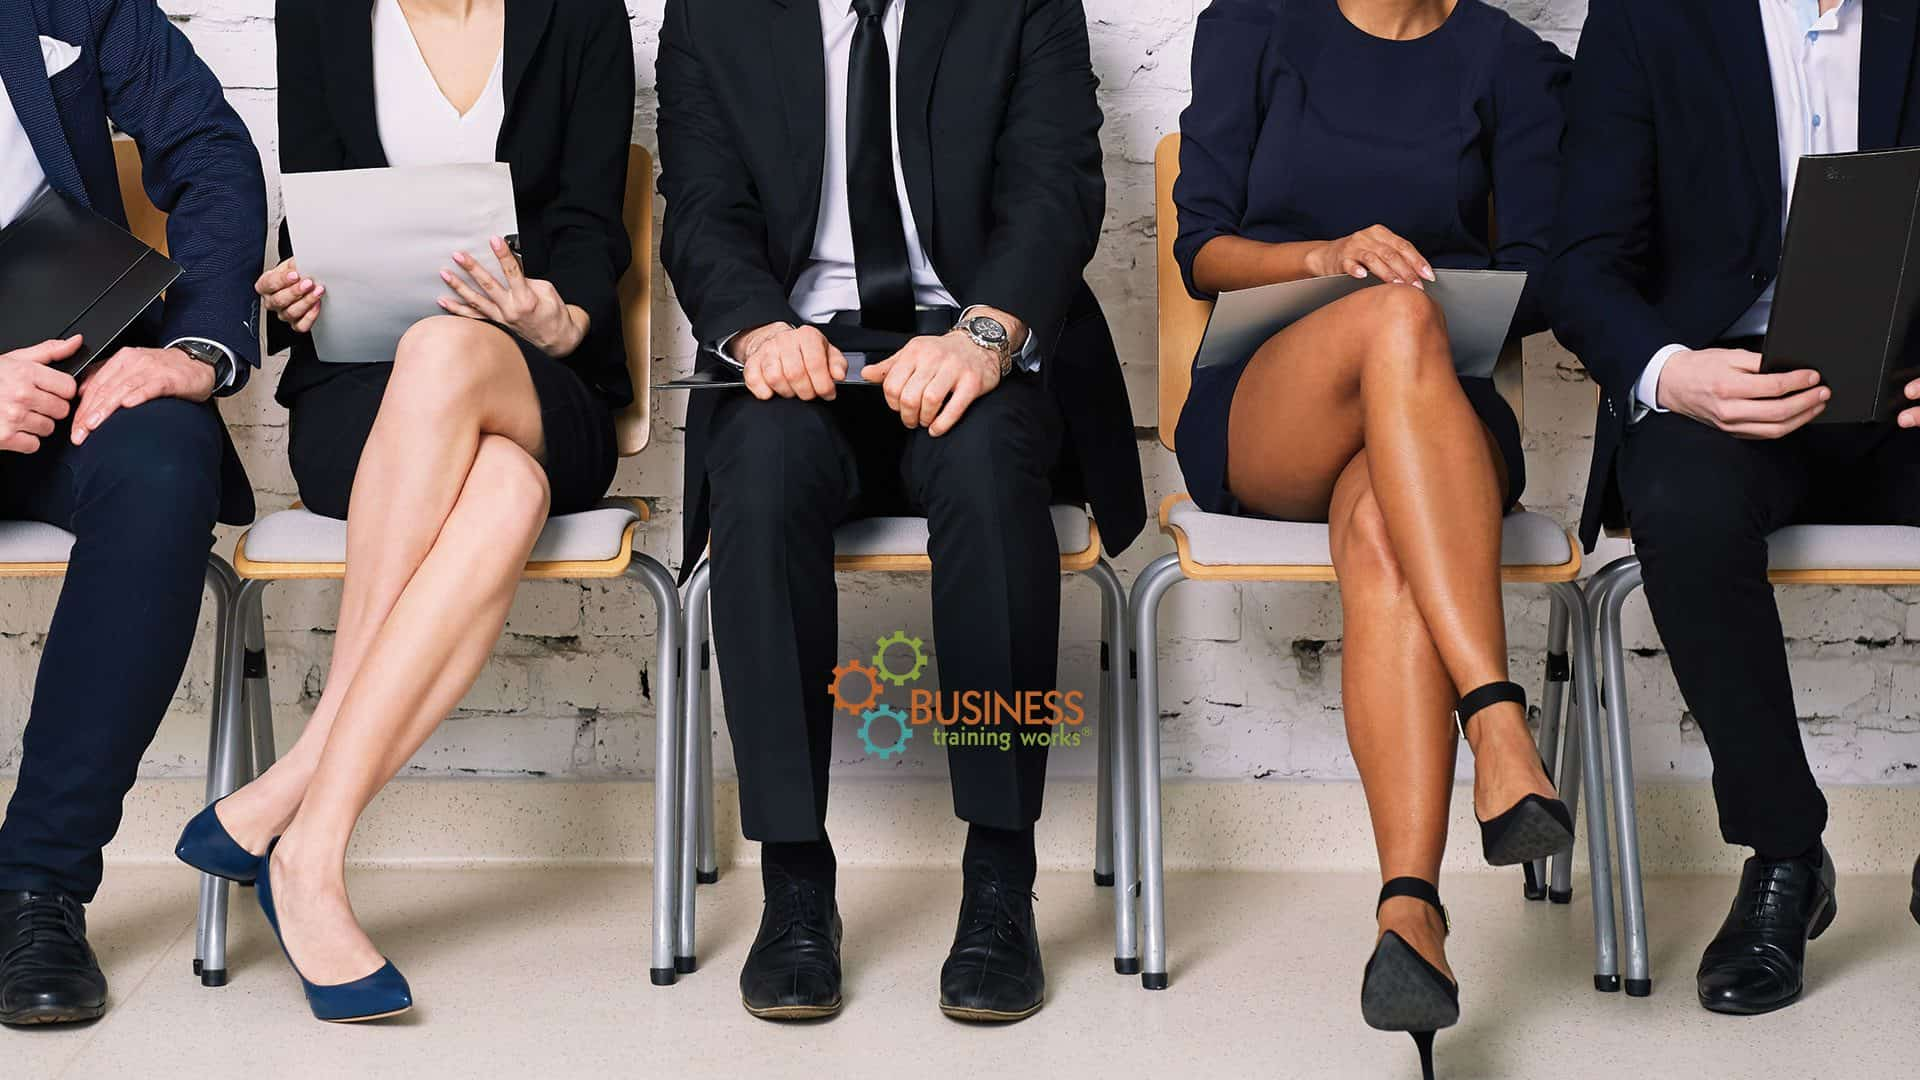 Web-Based Interviewing Skills Course